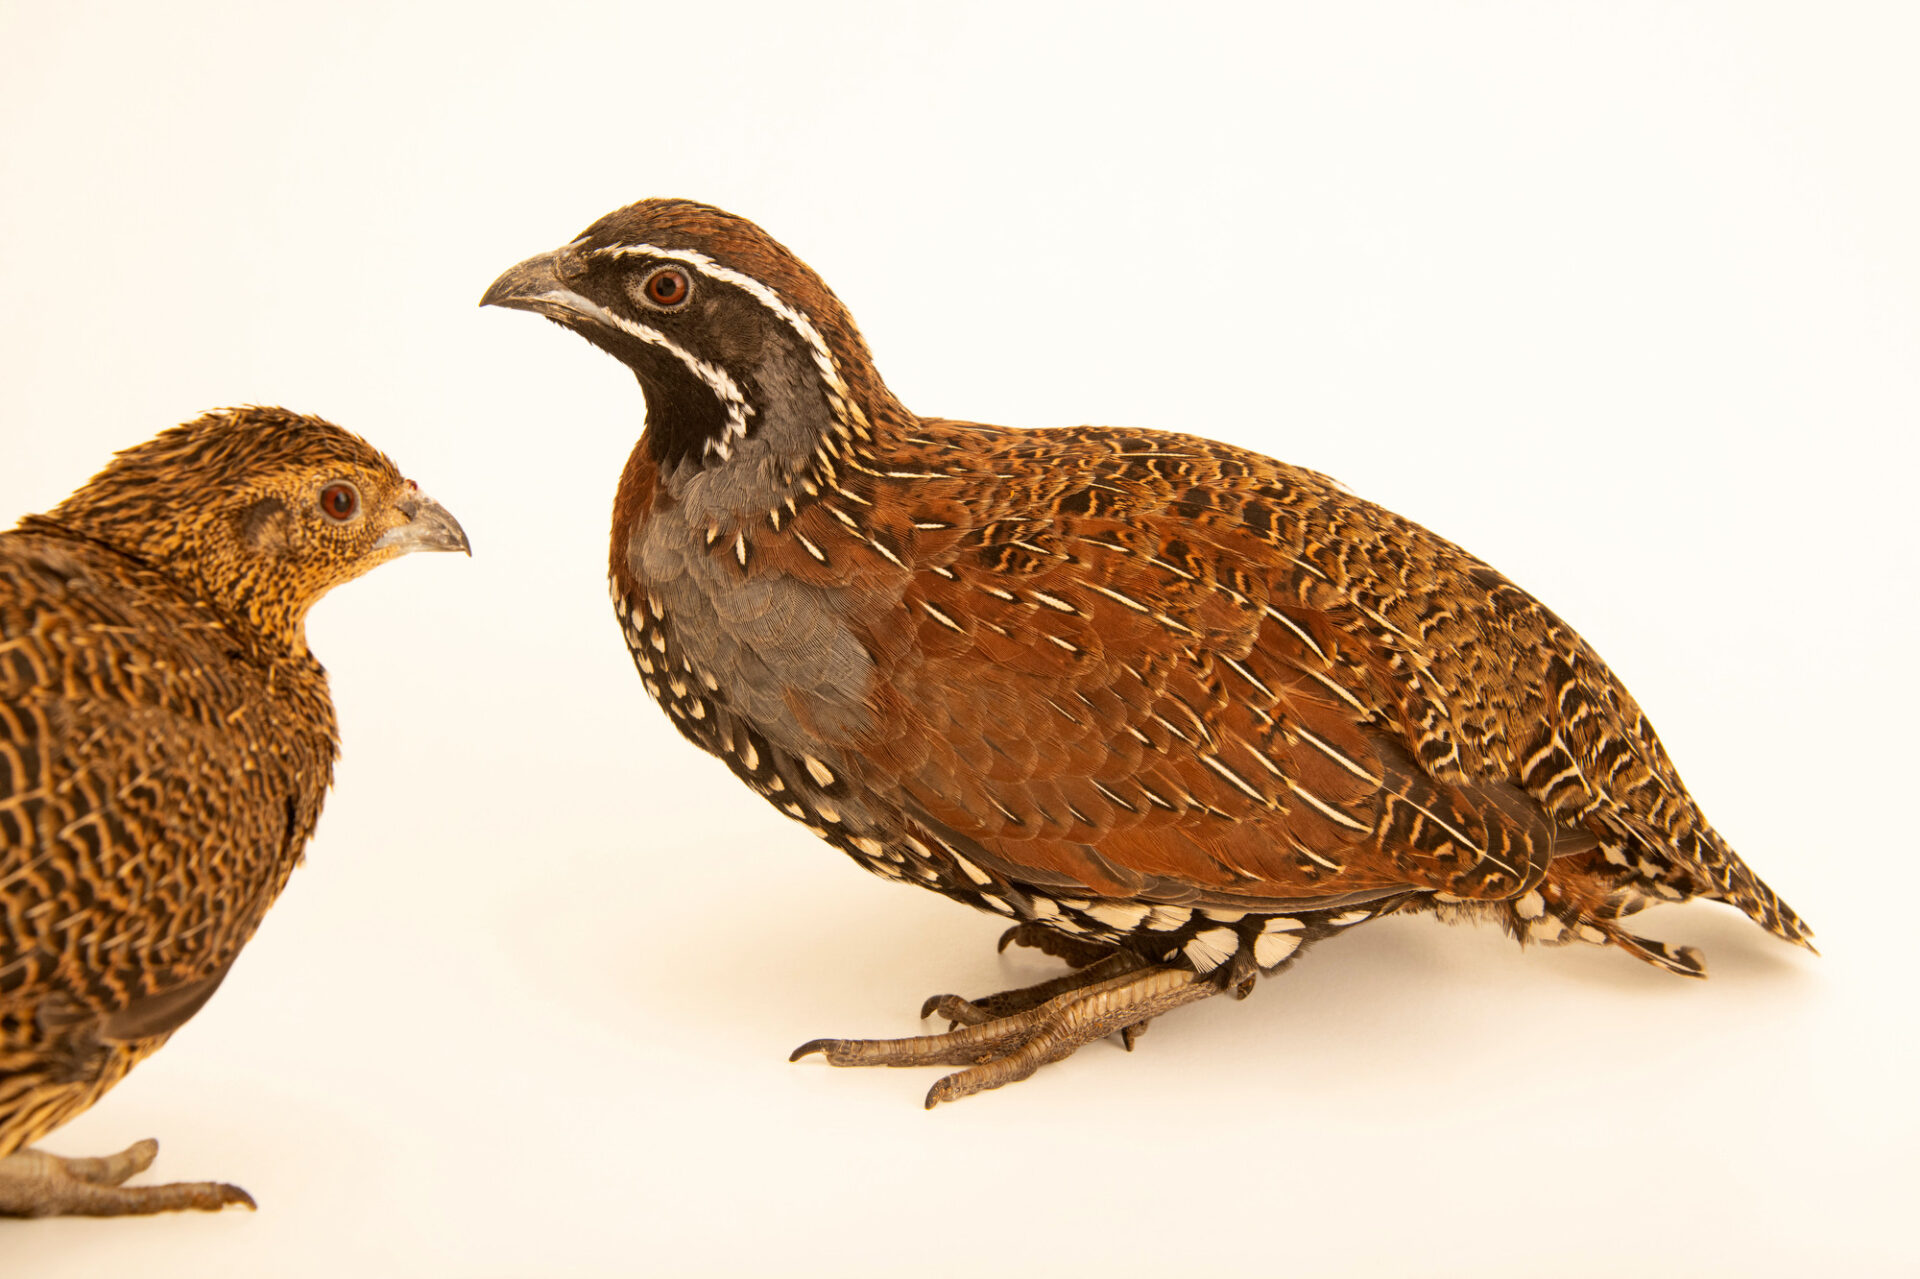 Photo: A pair of Madagascar partridges (Margaroperdix madagarensis) from a private collection.